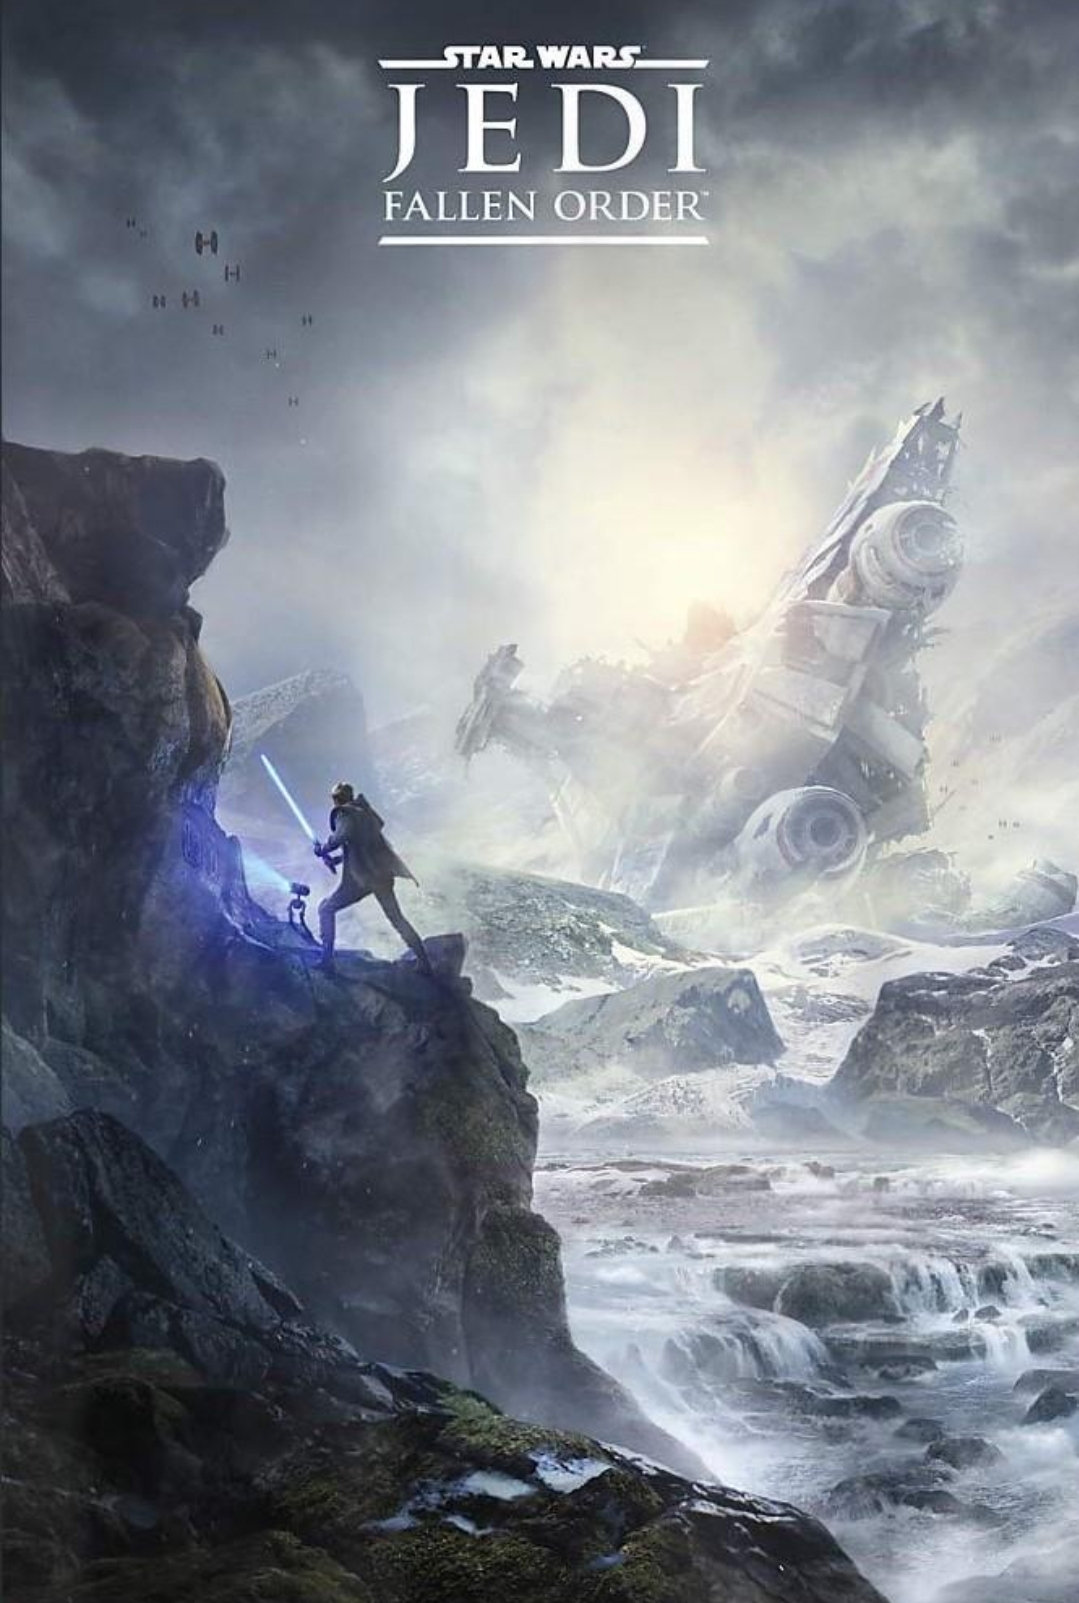 First Star Wars Jedi Fallen Order Poster Surfaces Shows Jedi And Droid At Snow Covered Planet Looking At Crashed Spacecraft